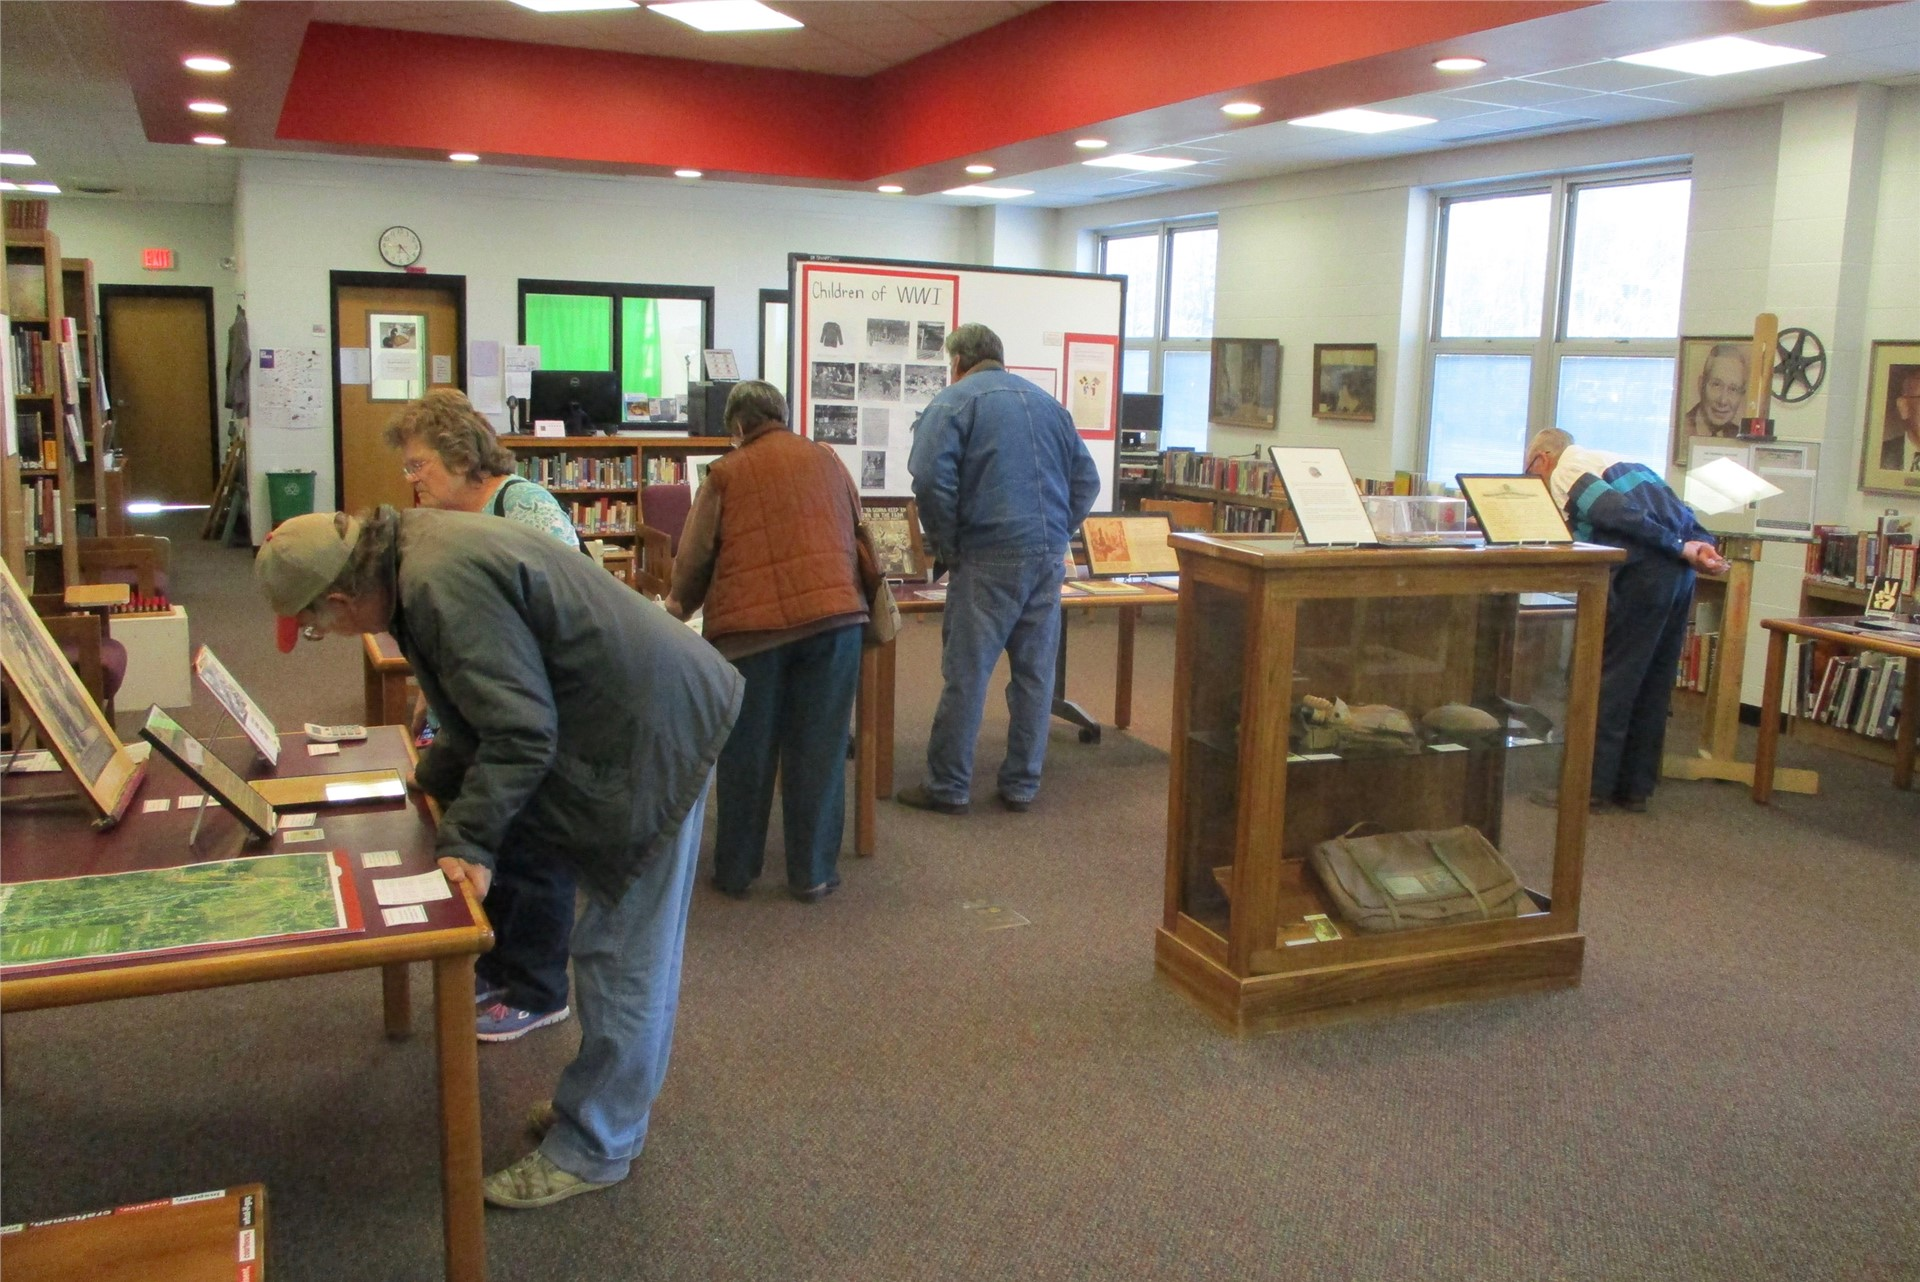 World War I exhibit: visitors looking at displays.